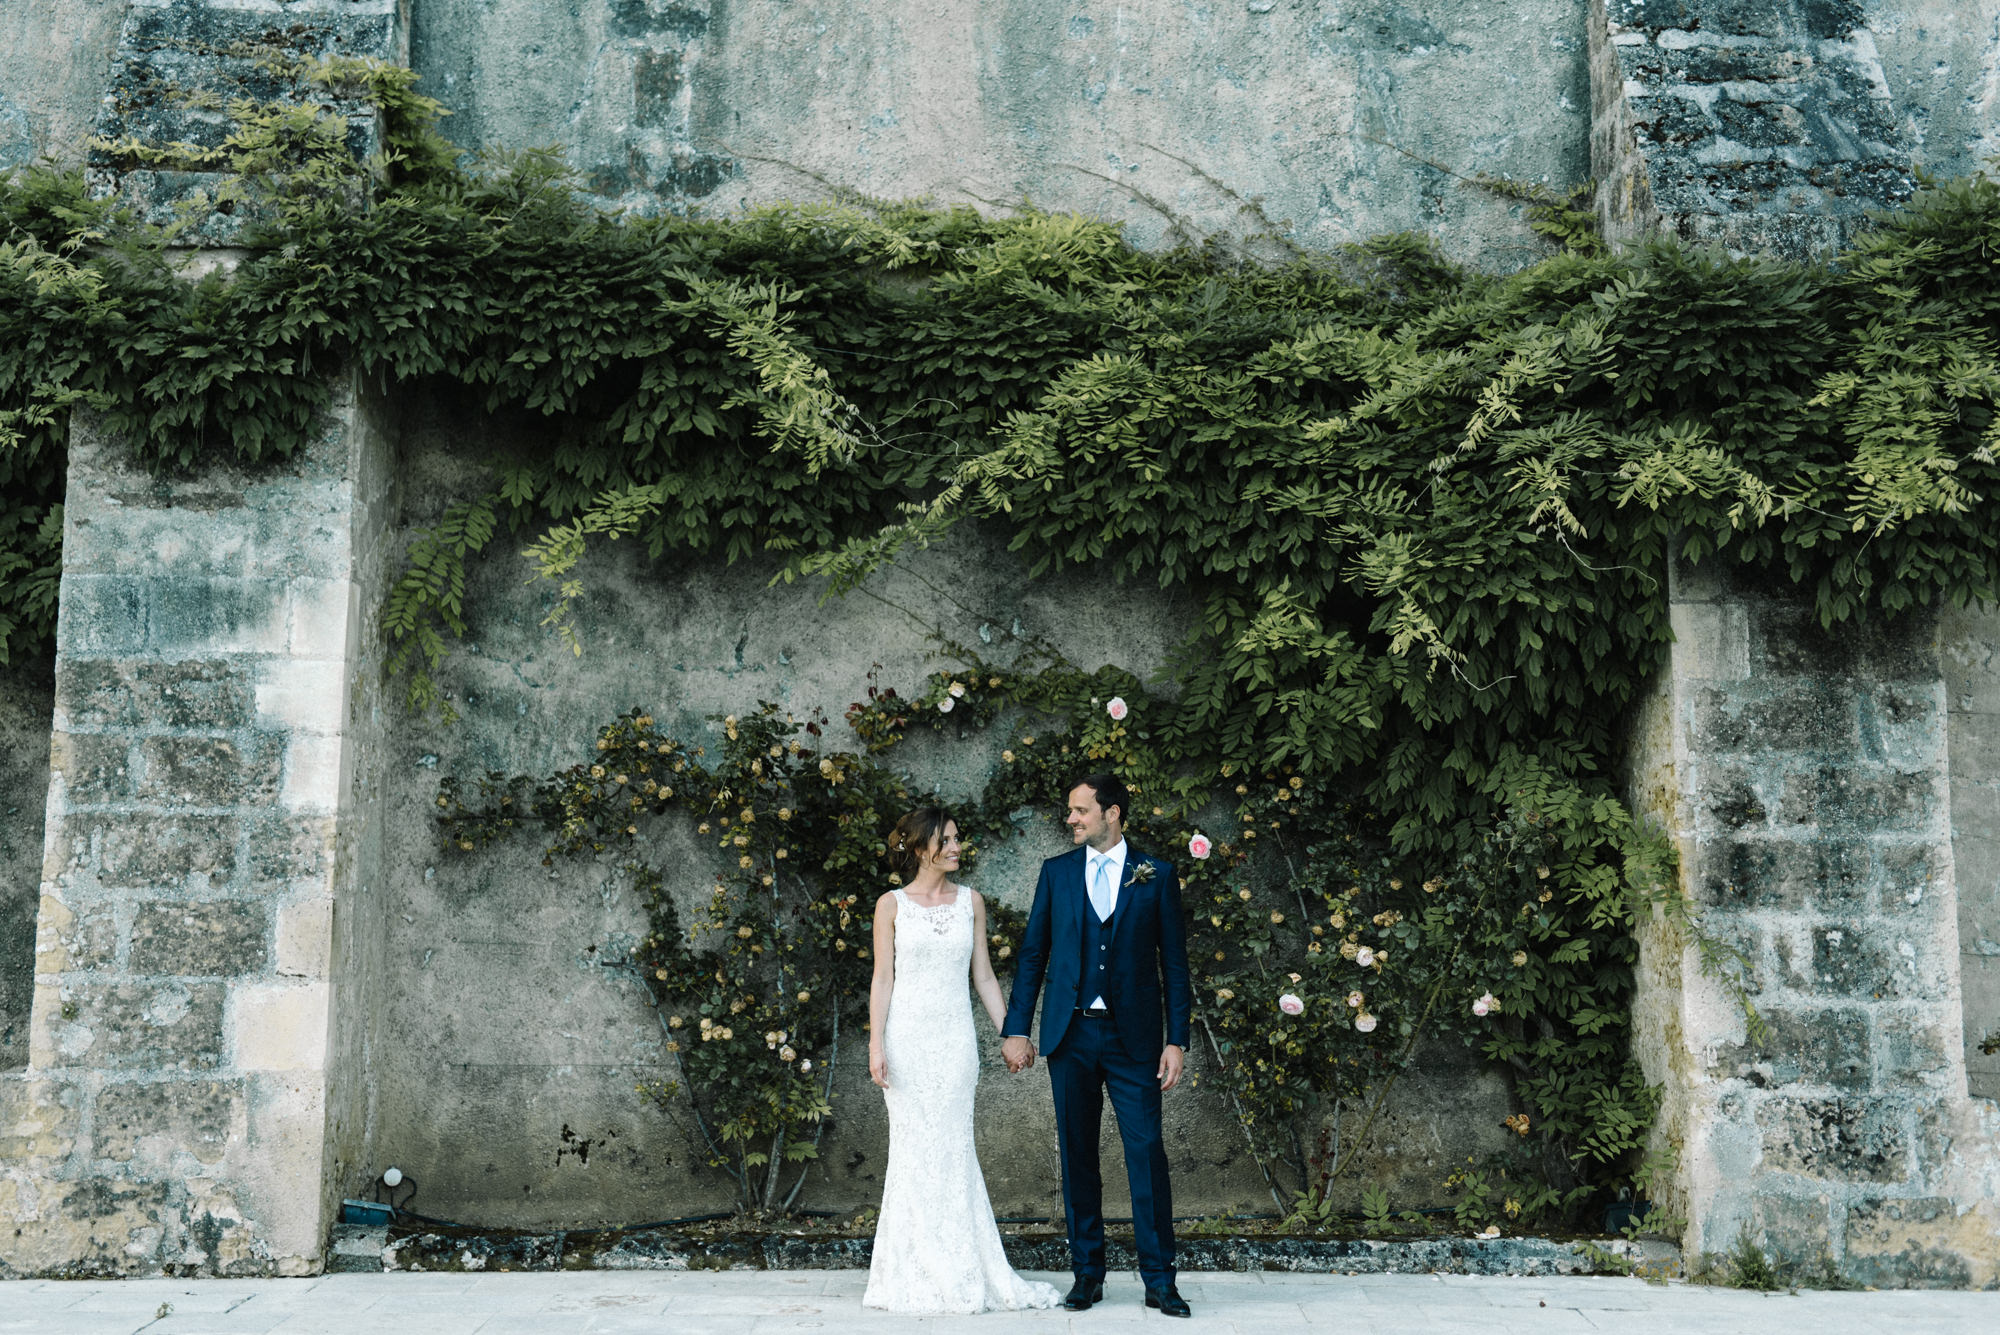 willybroussephotography-wedding-loirevalley-bidaudieres-laura-mathieu-91